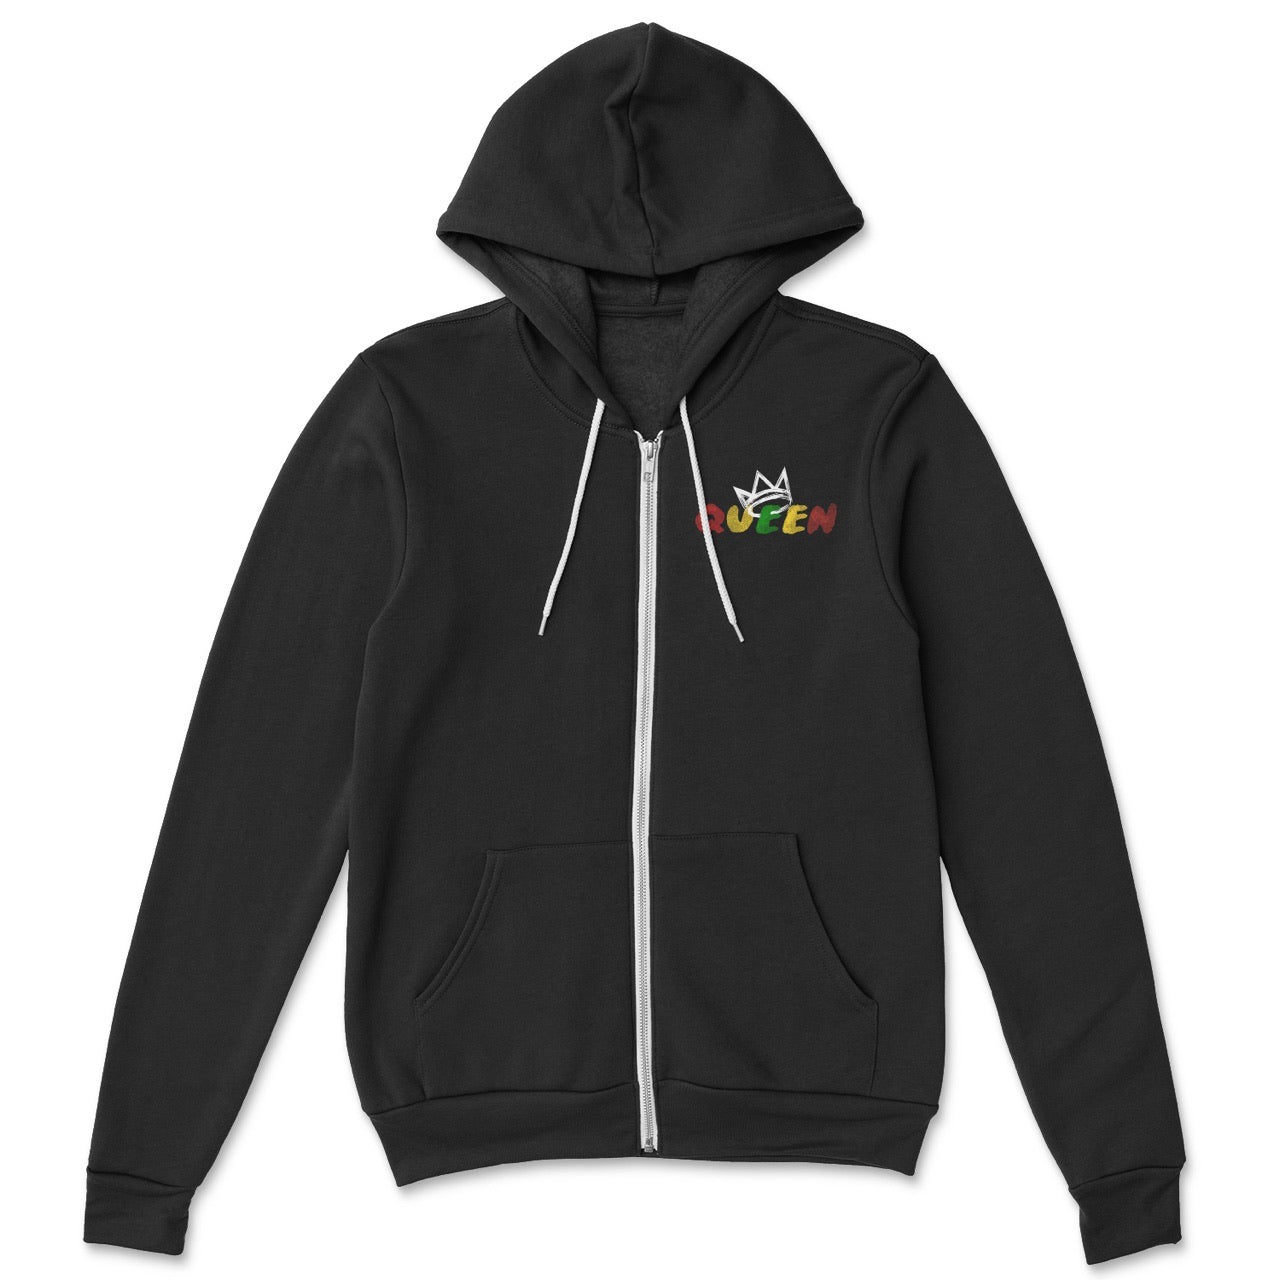 Queen Black Zip Up Hoodie (Crown Collection)